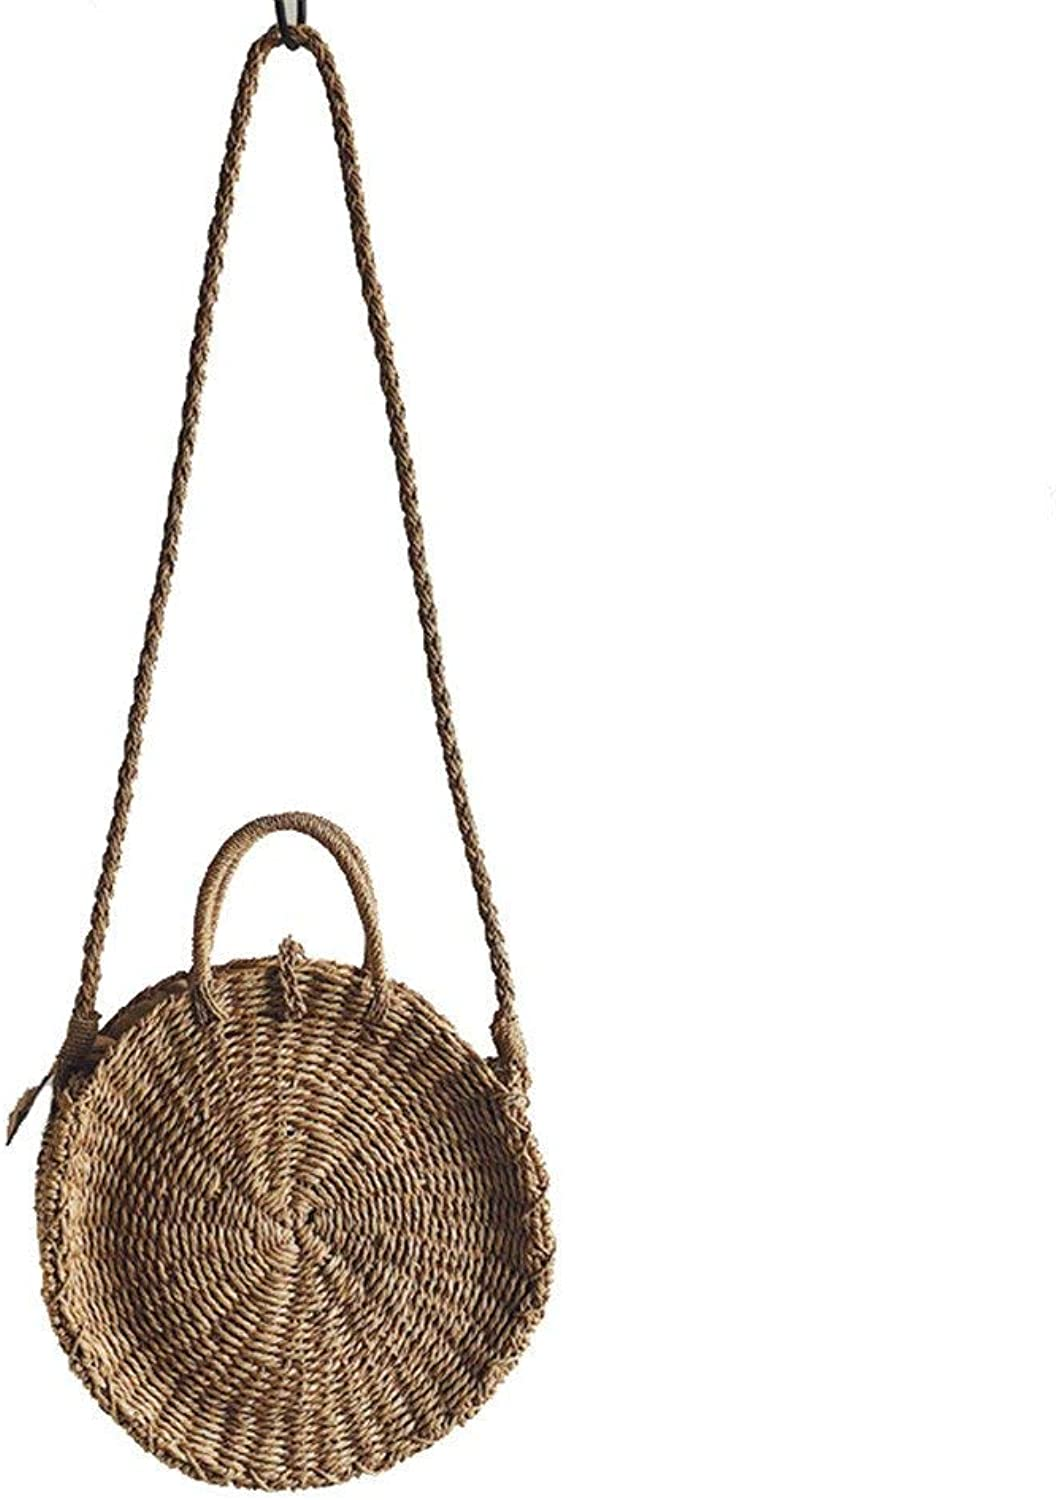 Ladies Handbag Straw Bag Round Beach Bag New Woven Holiday Package Literary Rattan Hand Shoulder Shoulder Diagonal Female Bag